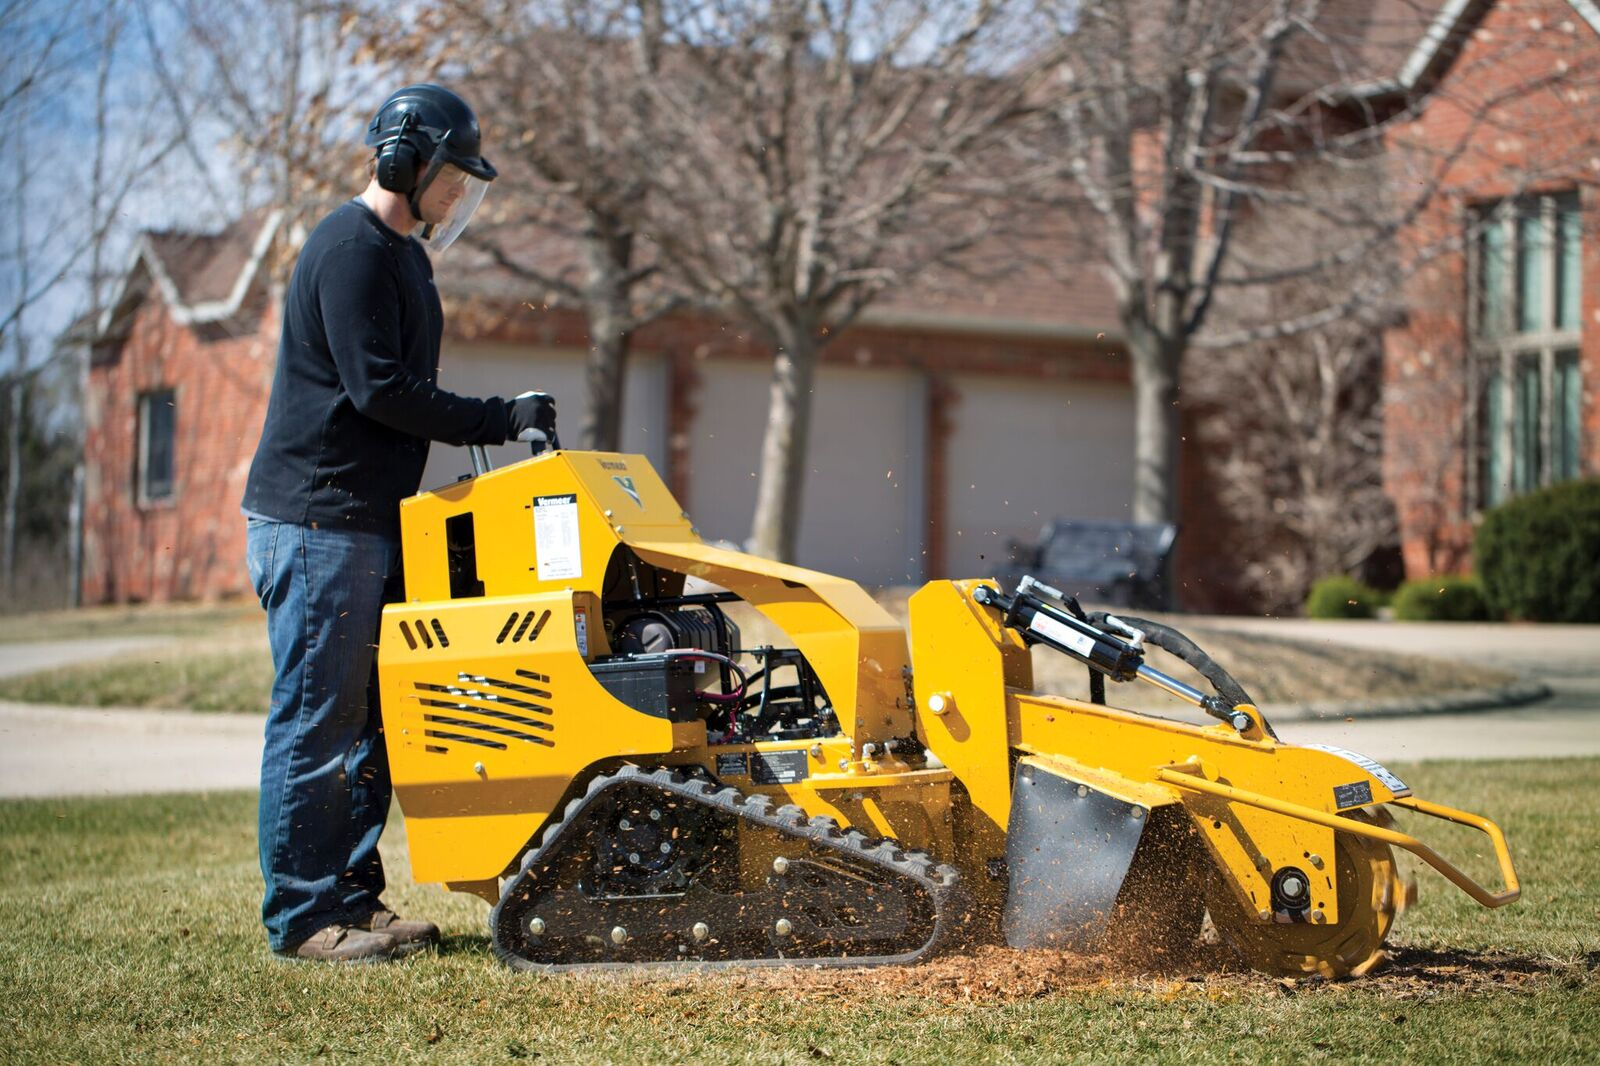 Zanesville-Fort Wayne Tree Trimming and Stump Grinding Services-We Offer Tree Trimming Services, Tree Removal, Tree Pruning, Tree Cutting, Residential and Commercial Tree Trimming Services, Storm Damage, Emergency Tree Removal, Land Clearing, Tree Companies, Tree Care Service, Stump Grinding, and we're the Best Tree Trimming Company Near You Guaranteed!